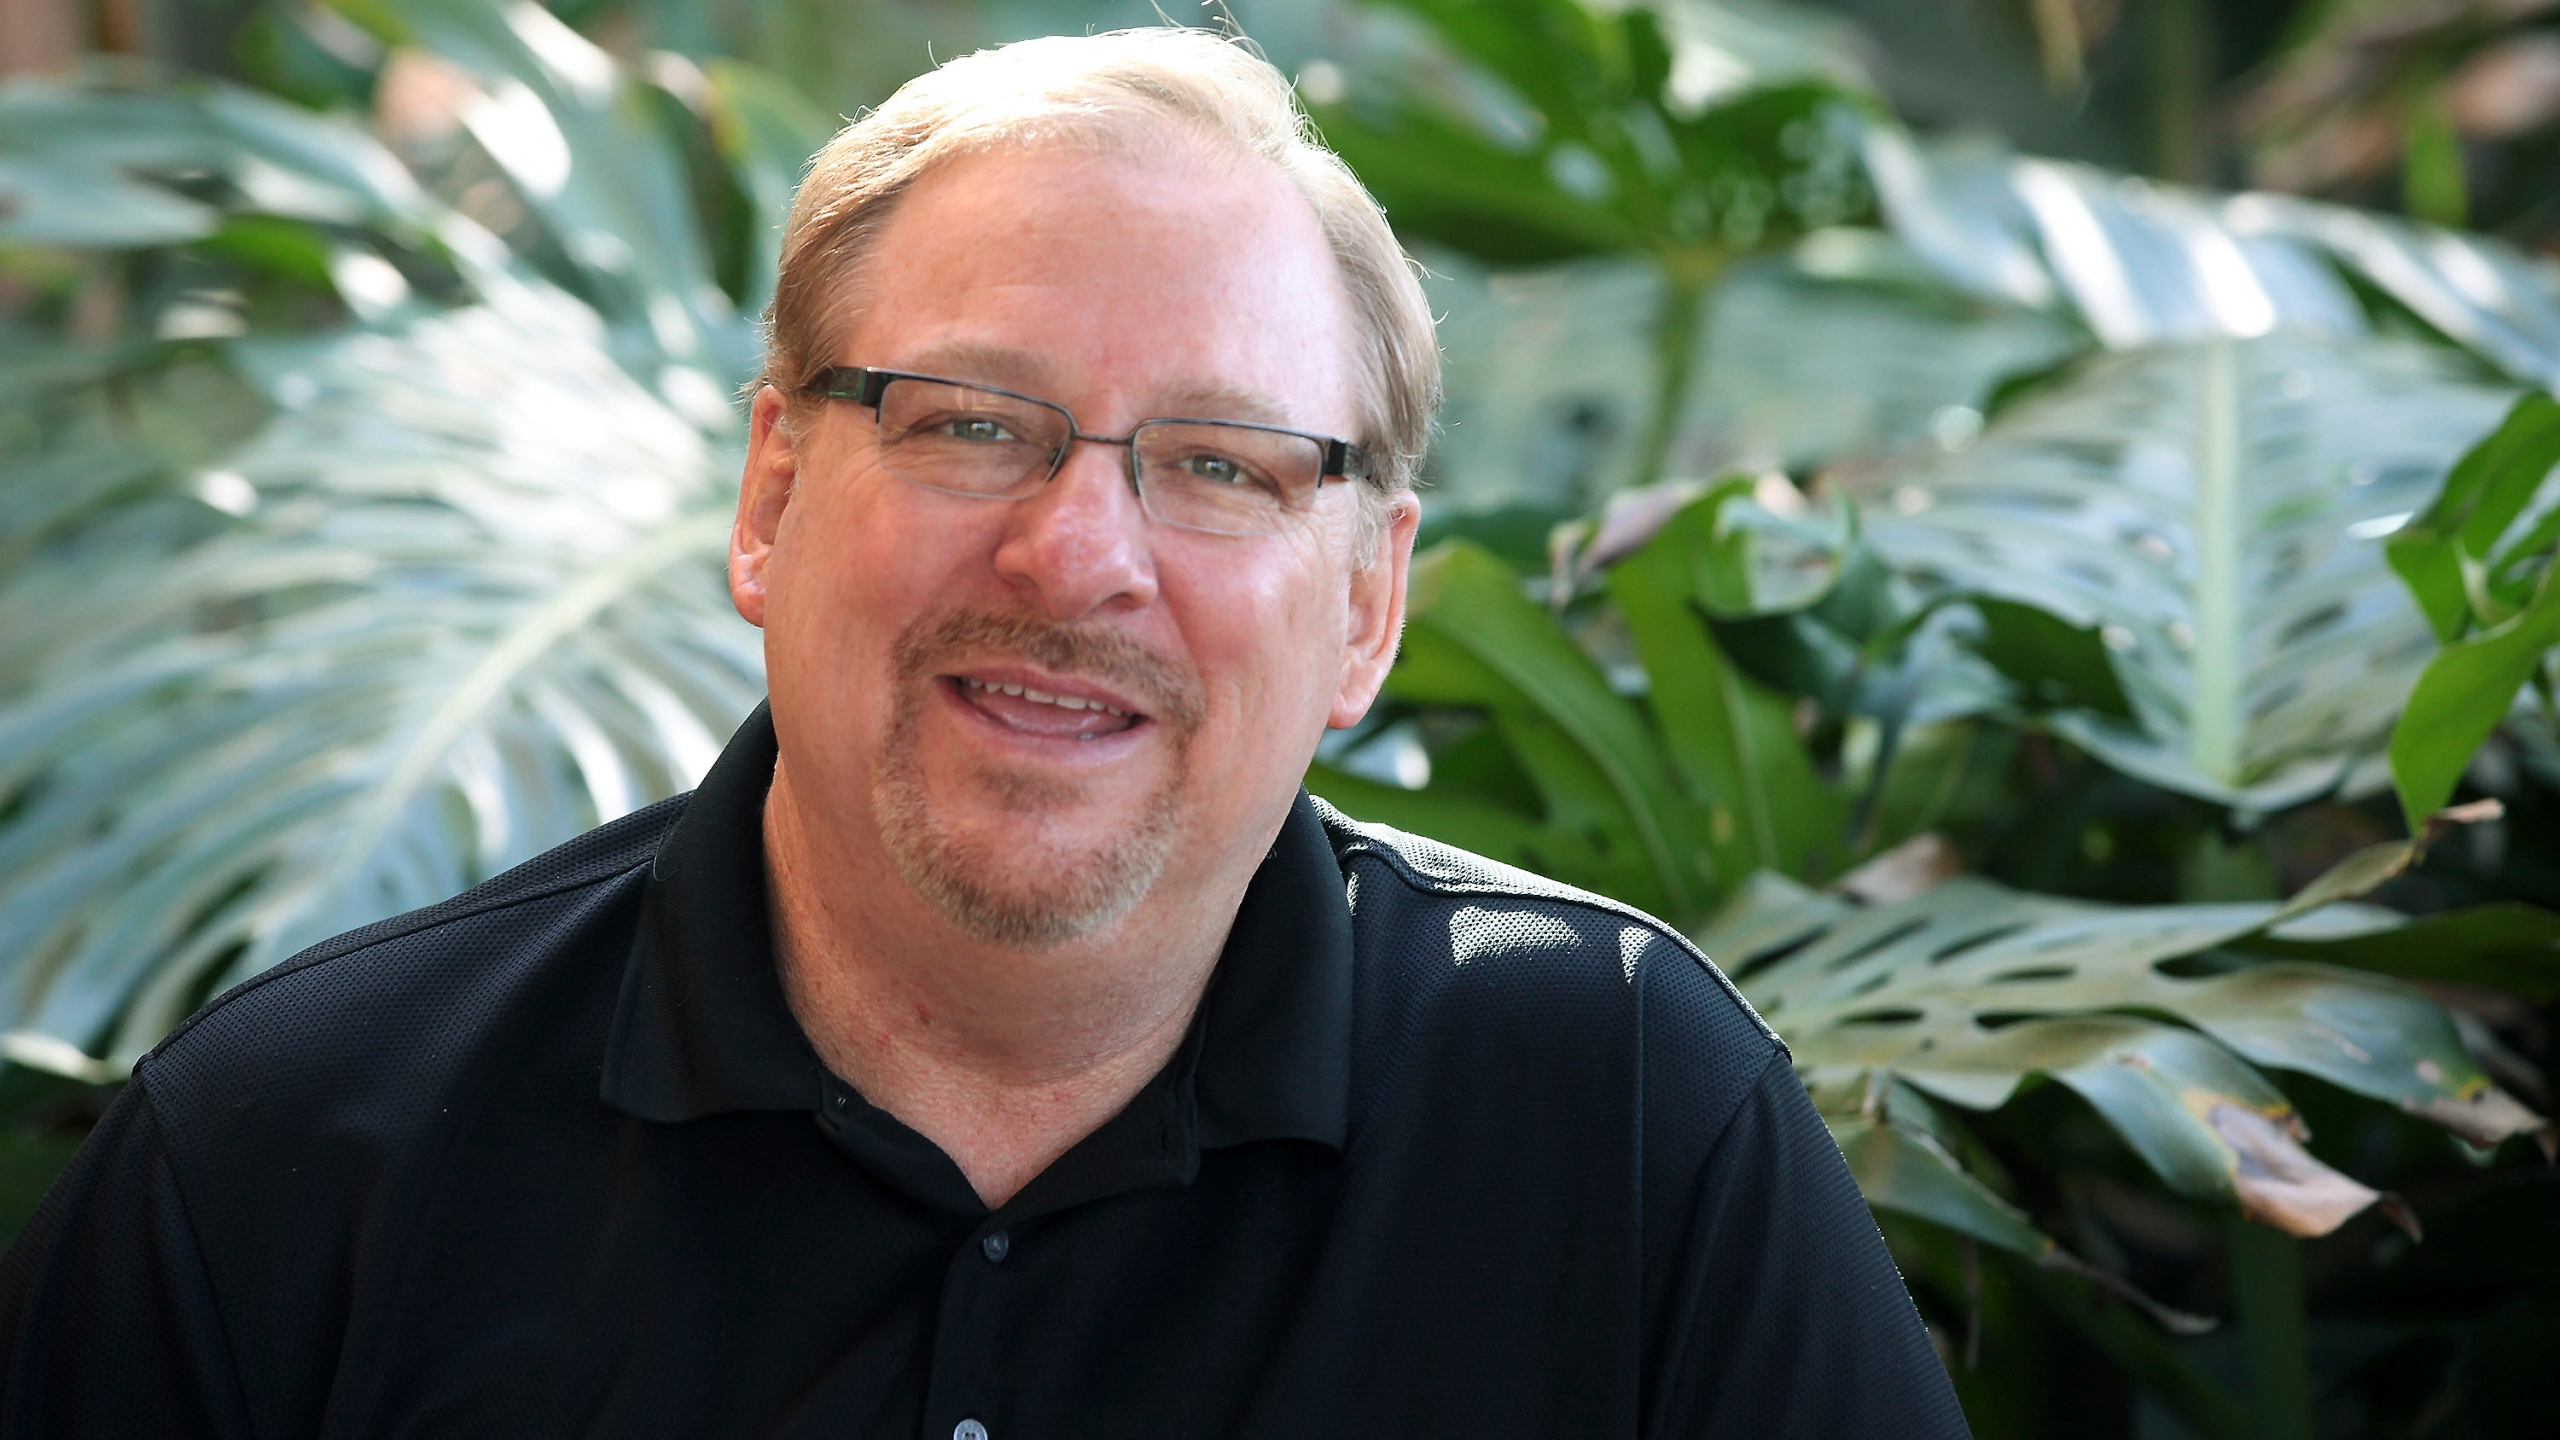 In this Feb. 24, 2014, file photo, Saddleback Church founder and Senior Pastor Rick Warren poses for a photo at the Saddleback Church in Lake Forest, Calif. (AP Photo/Nick Ut, File)